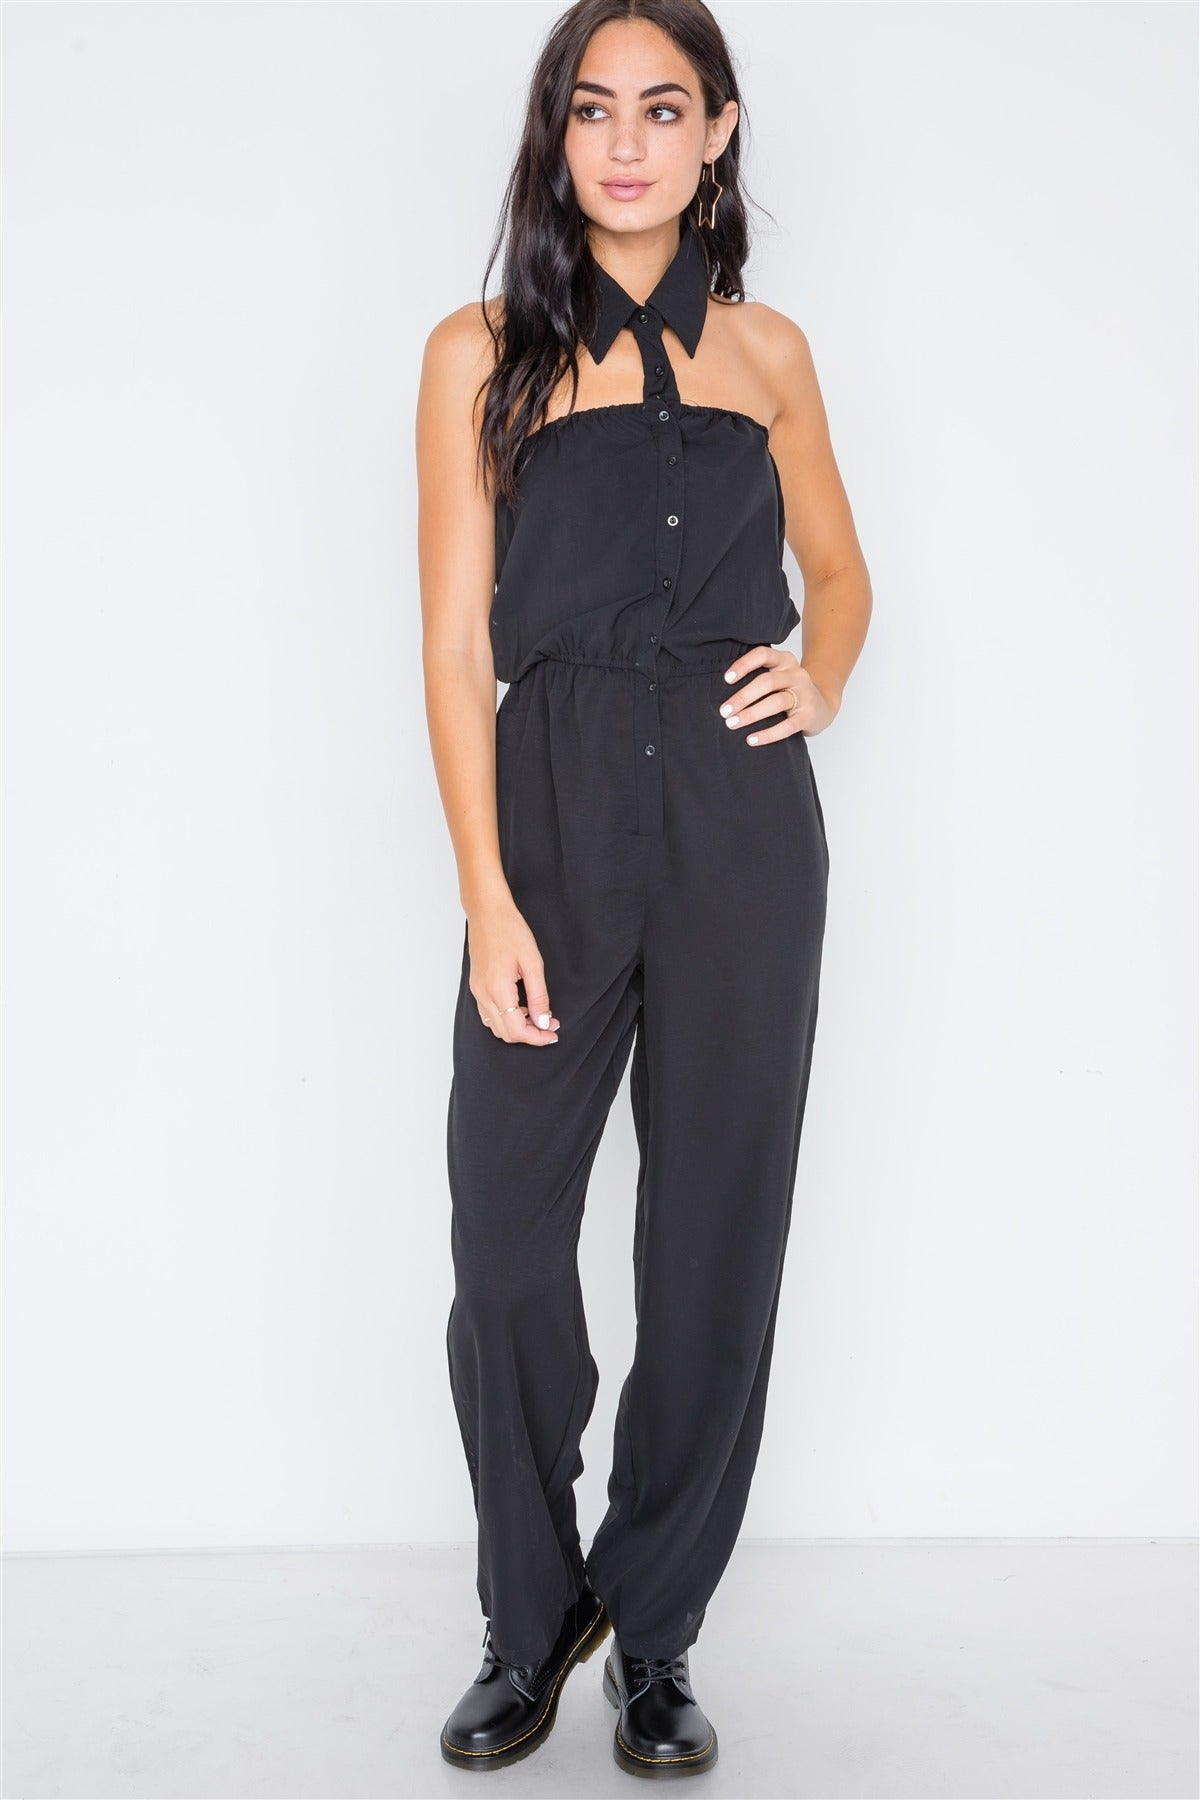 It's Friday - Button Down Jumpsuit - The Luxstop